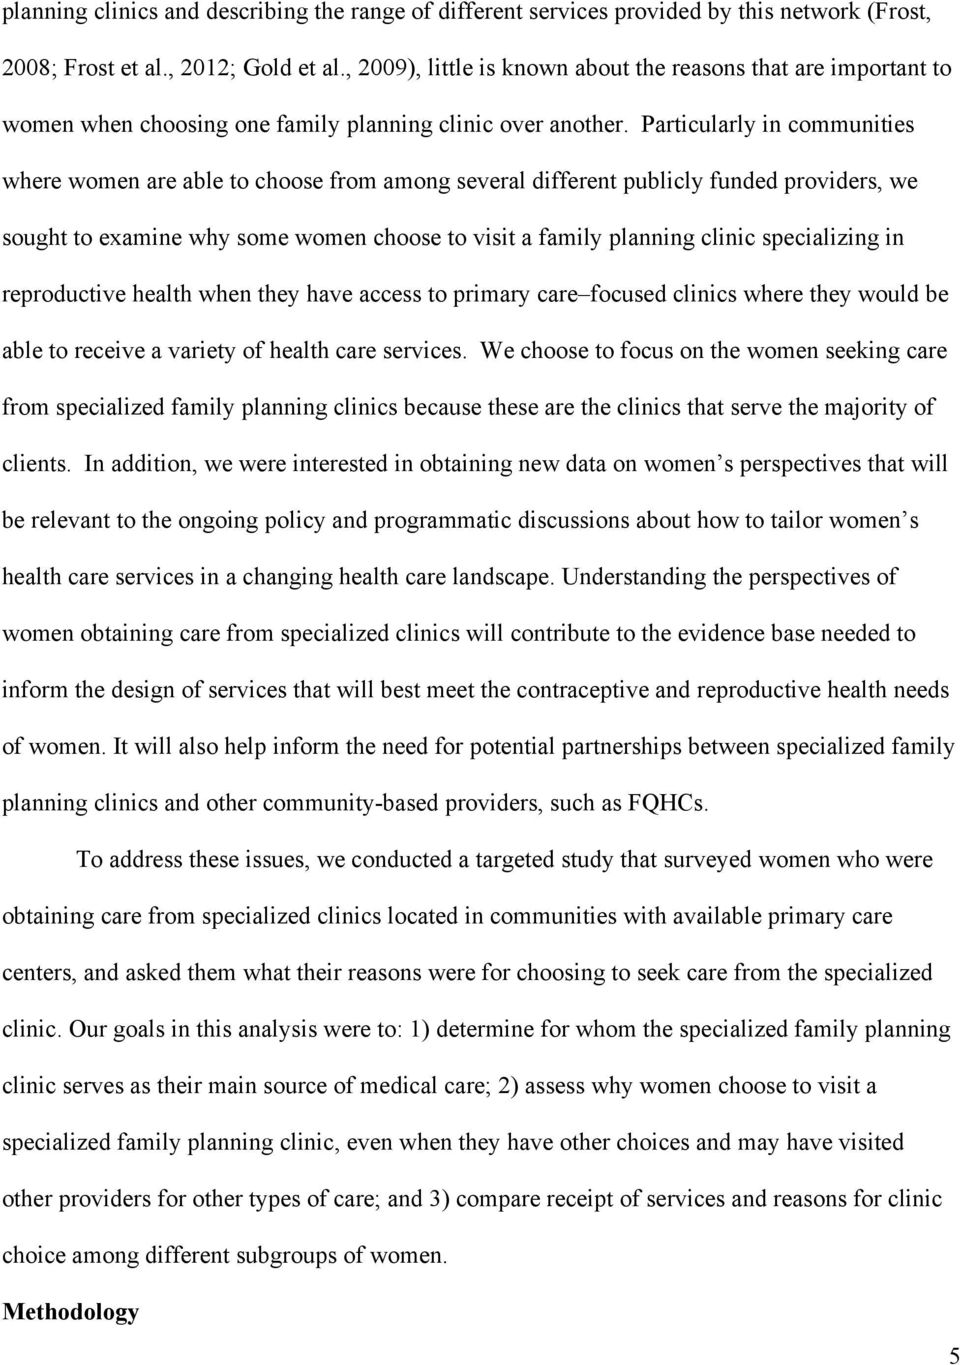 Particularly in communities where women are able to choose from among several different publicly funded providers, we sought to examine why some women choose to visit a family planning clinic